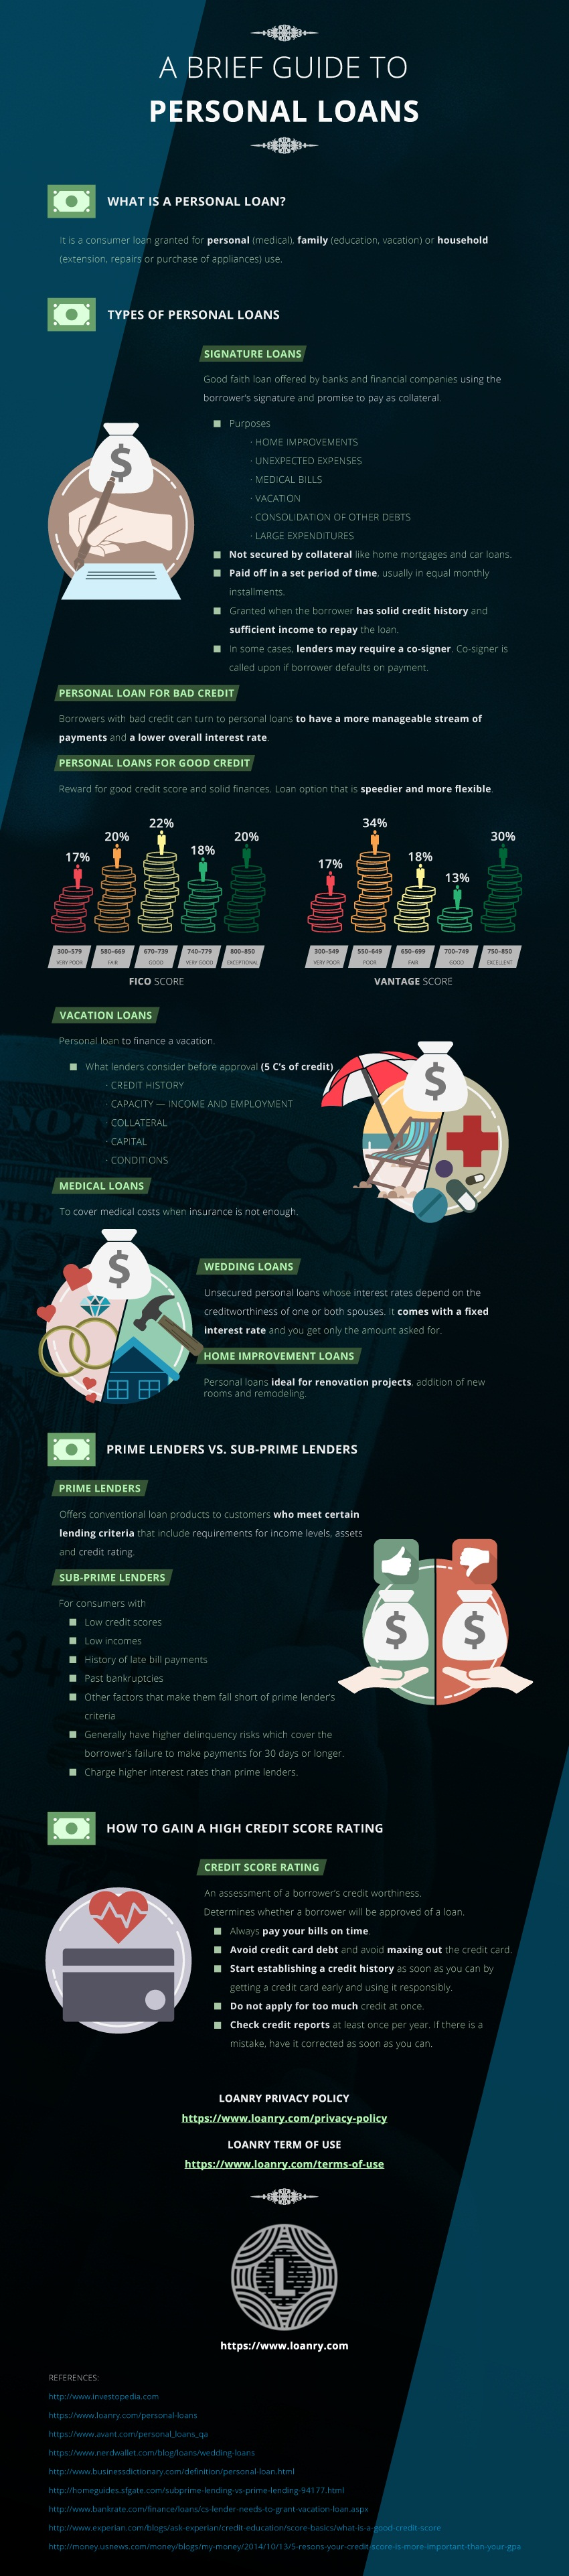 Personal Loans Infographic